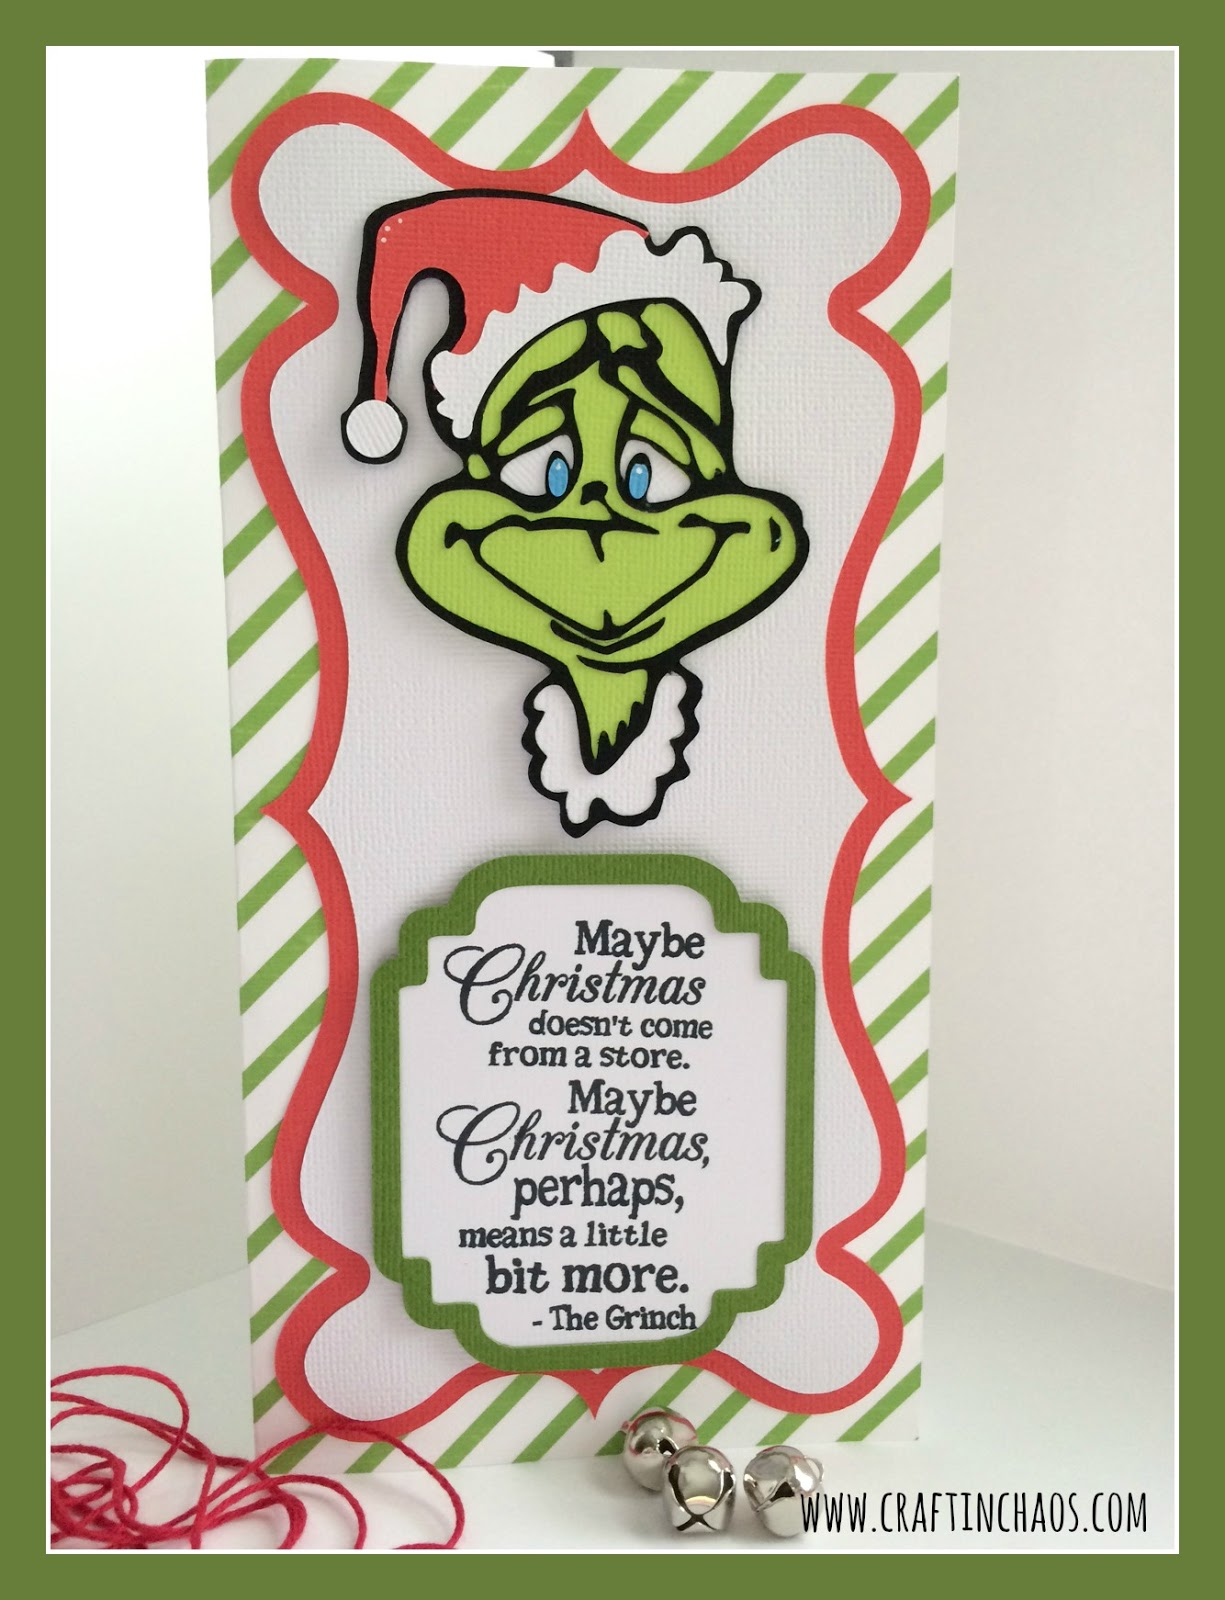 Grinch Face Svg   Search Results   Calendar 2015